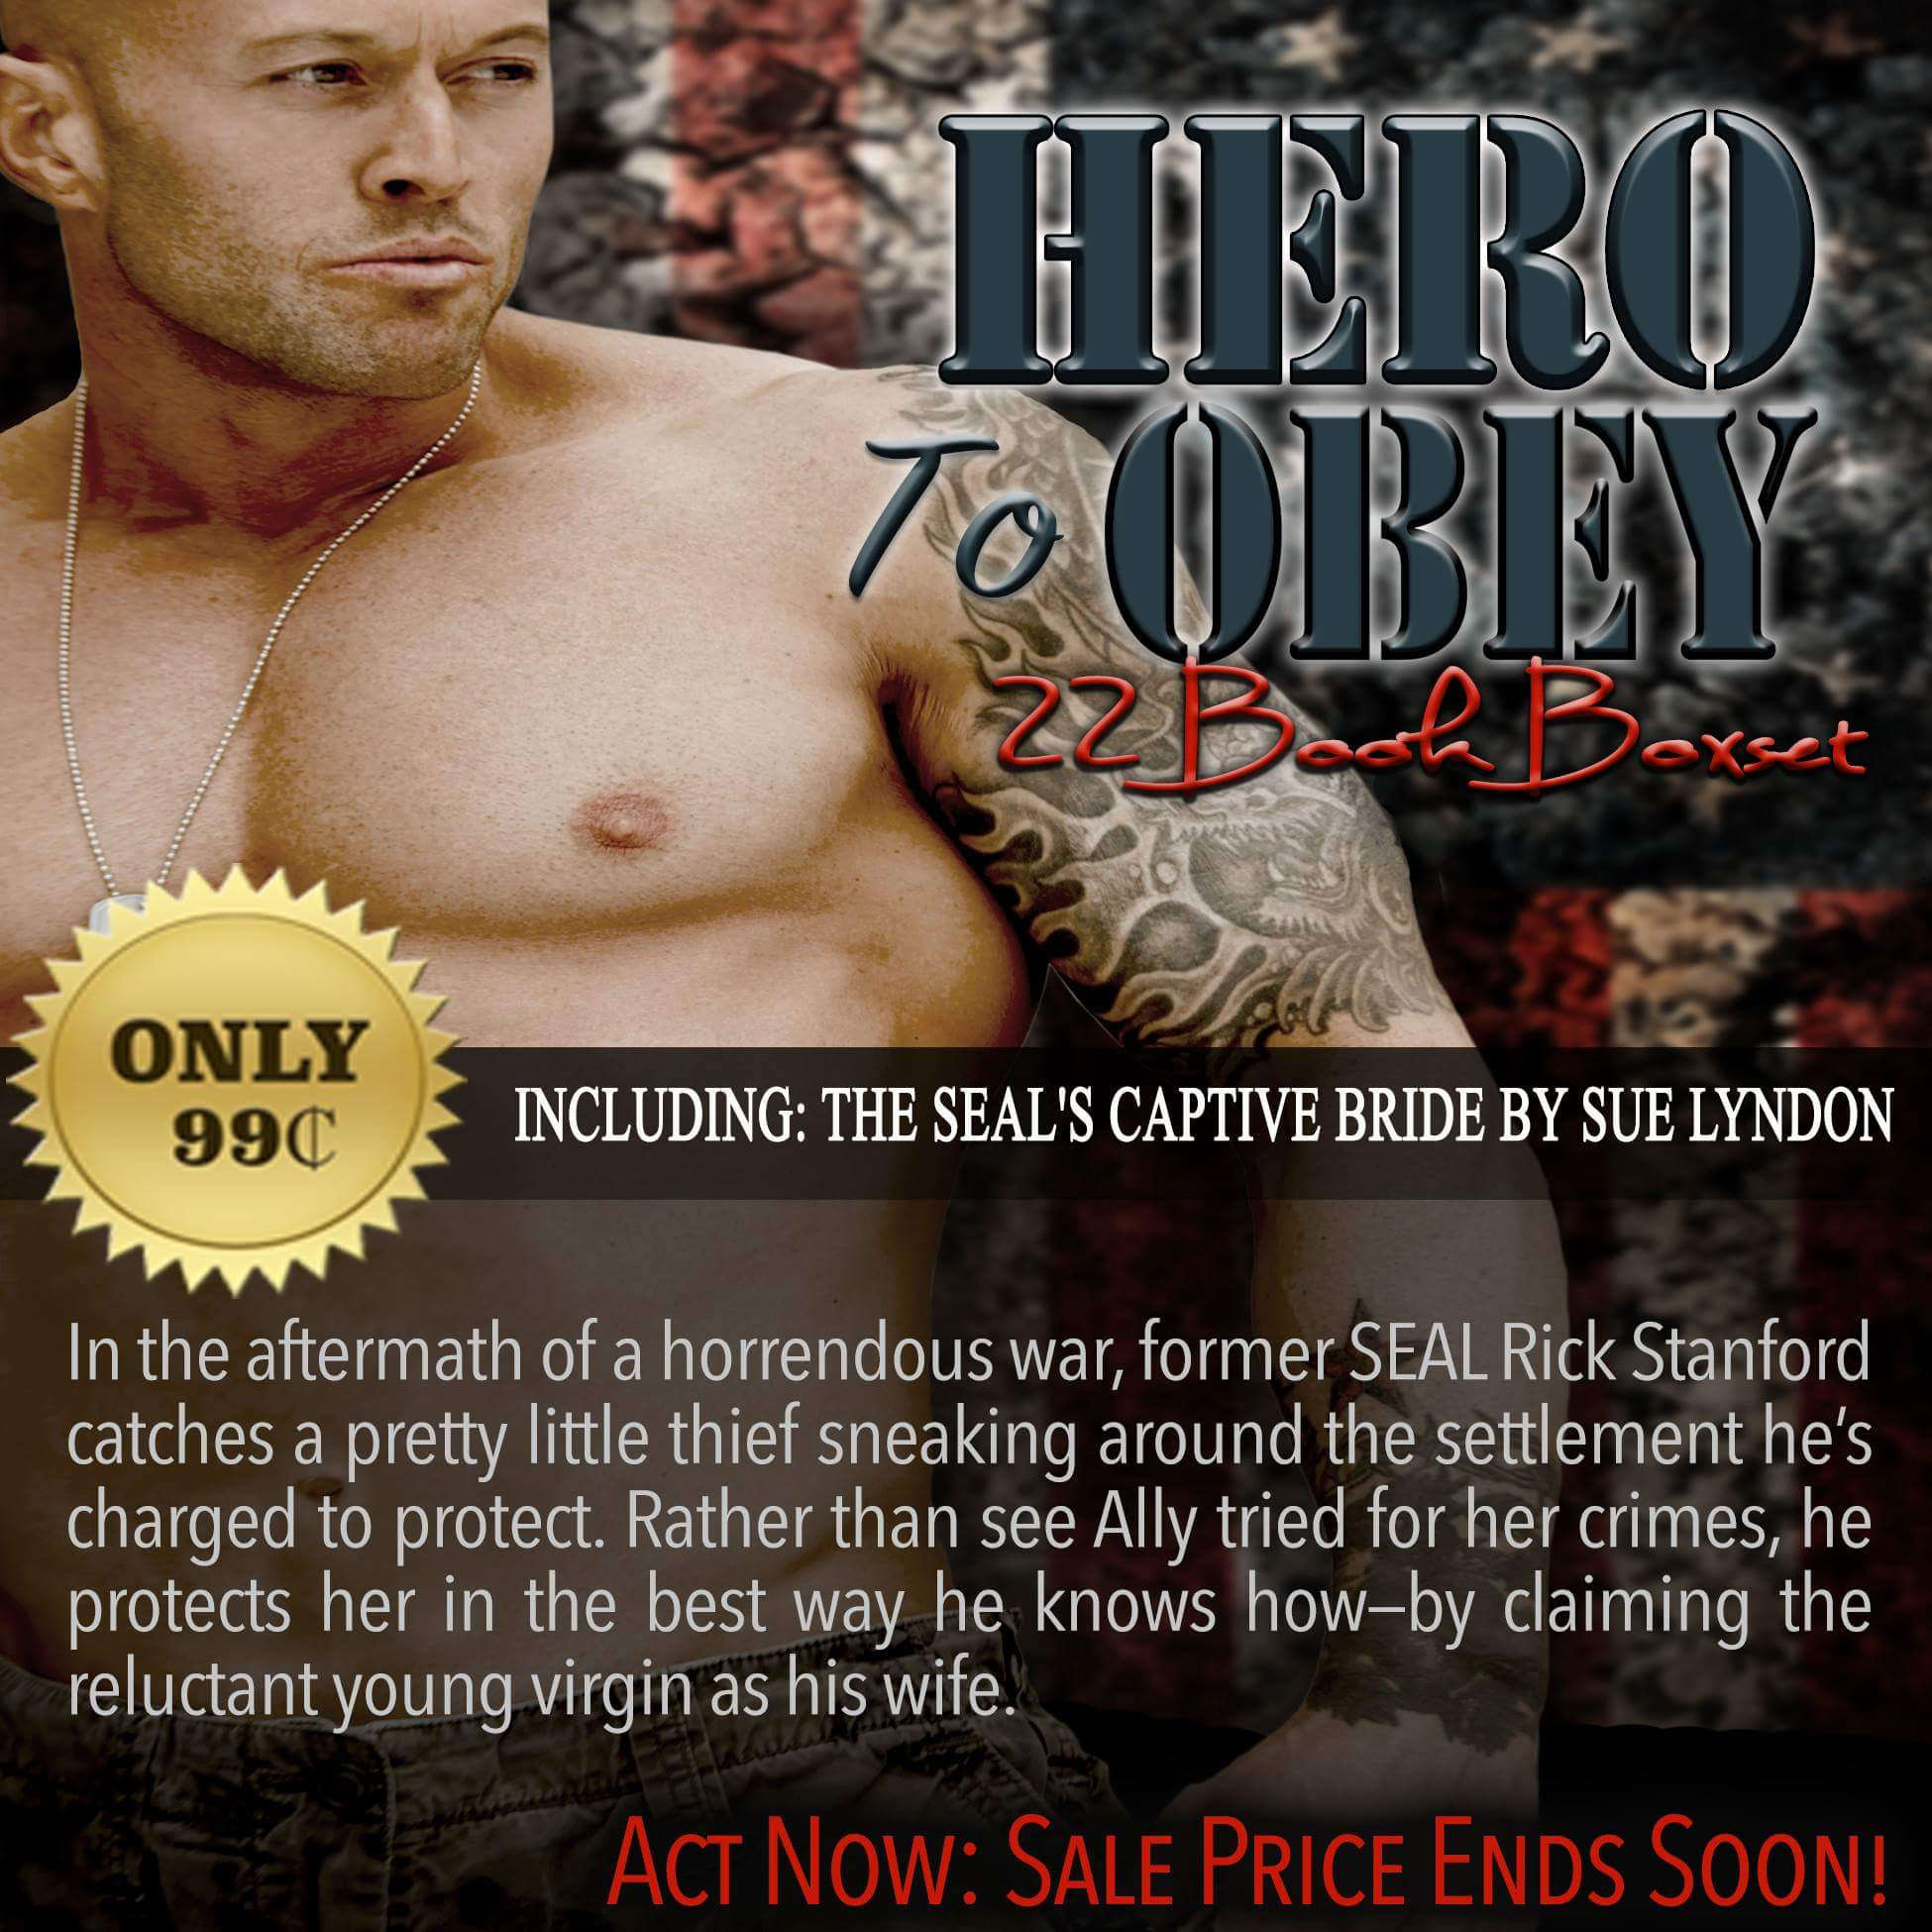 Hero To Obey Book Cover Model Actor John Joseph Quinlan by Sue Lyndon. #JohnQuinlan #Hero2obey